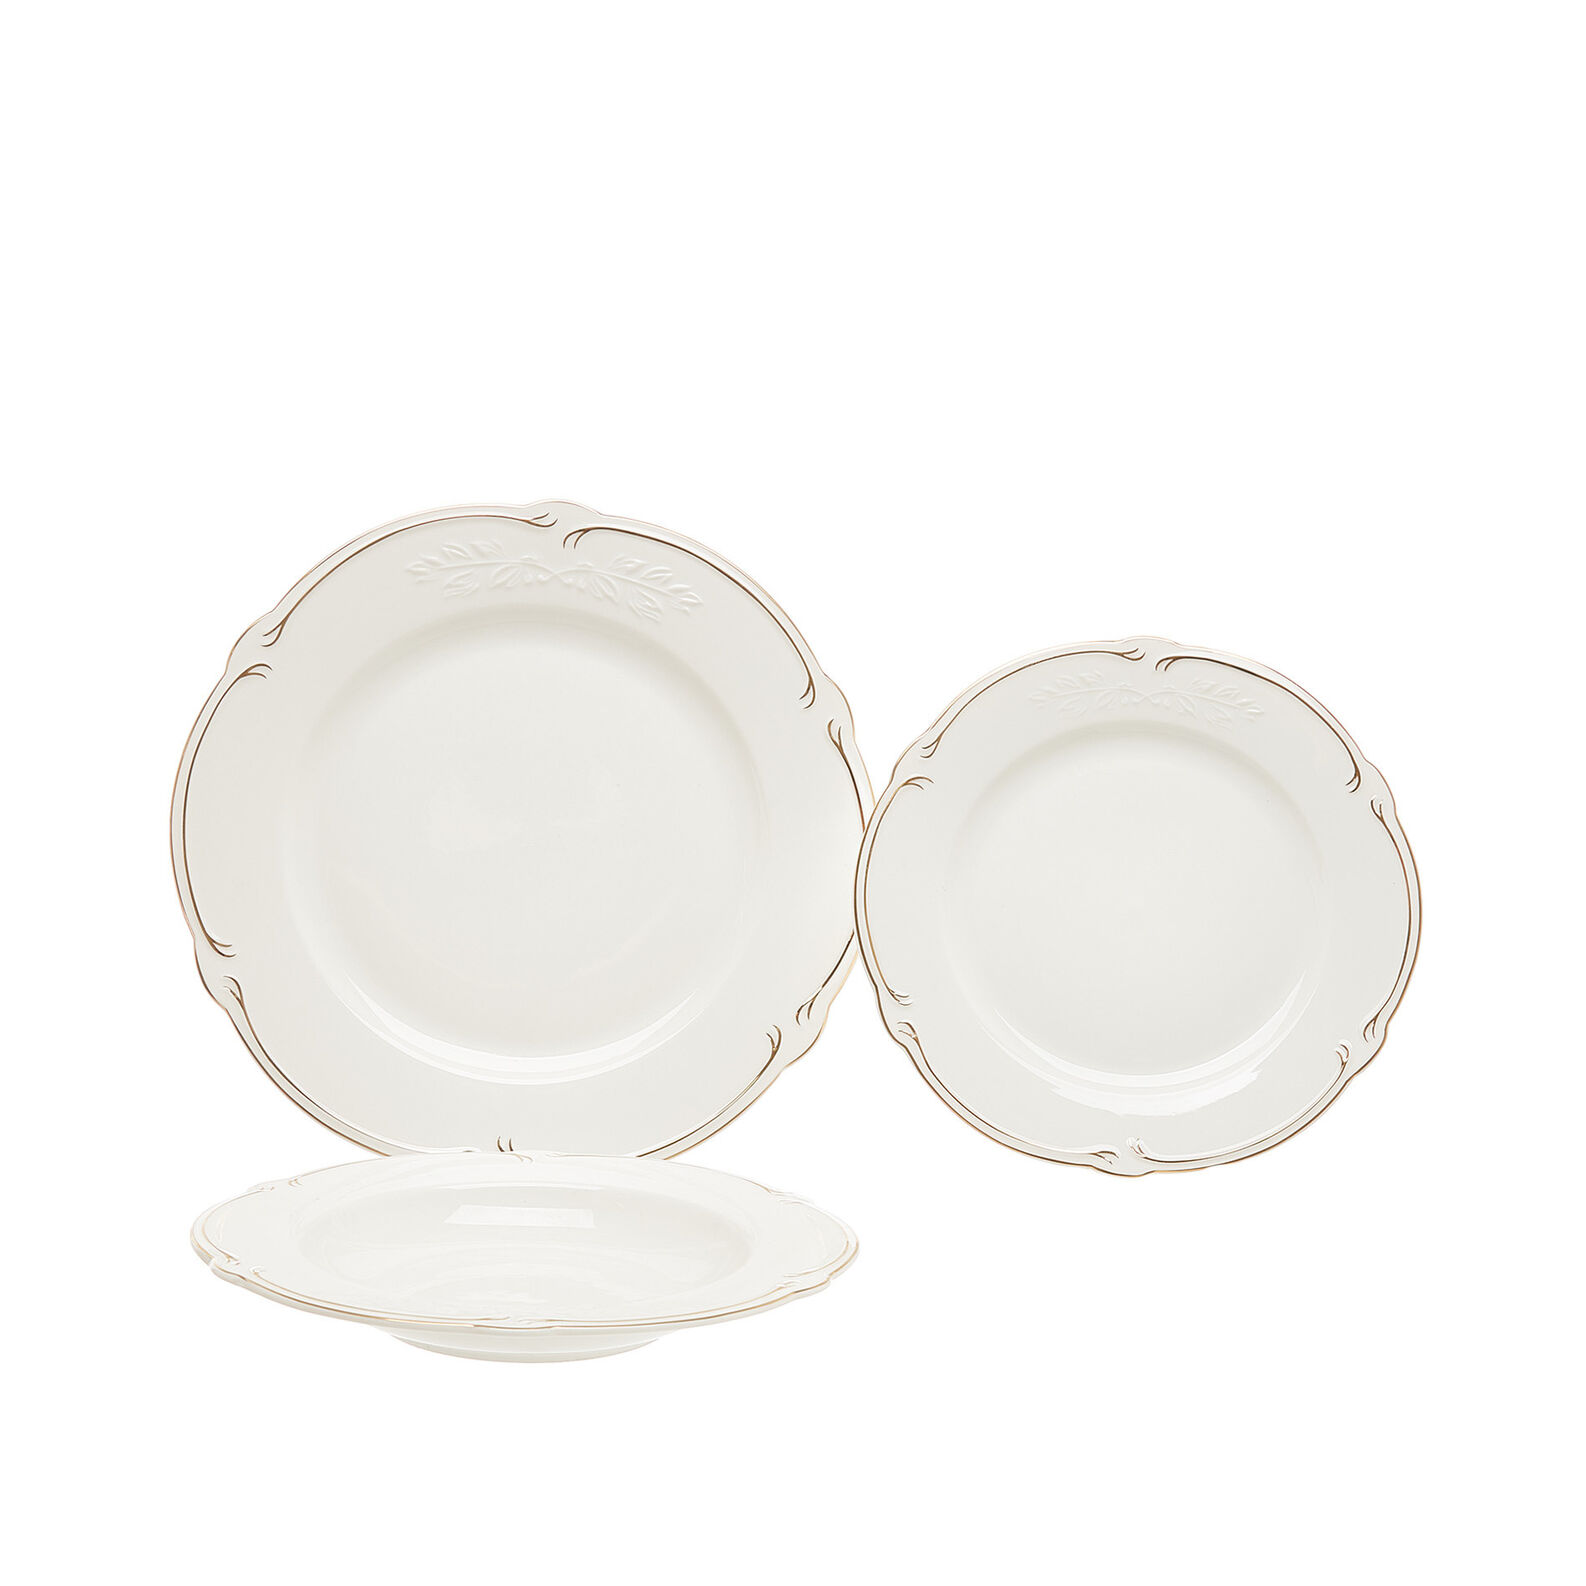 Set of 18 new bone China plates with gold stripe